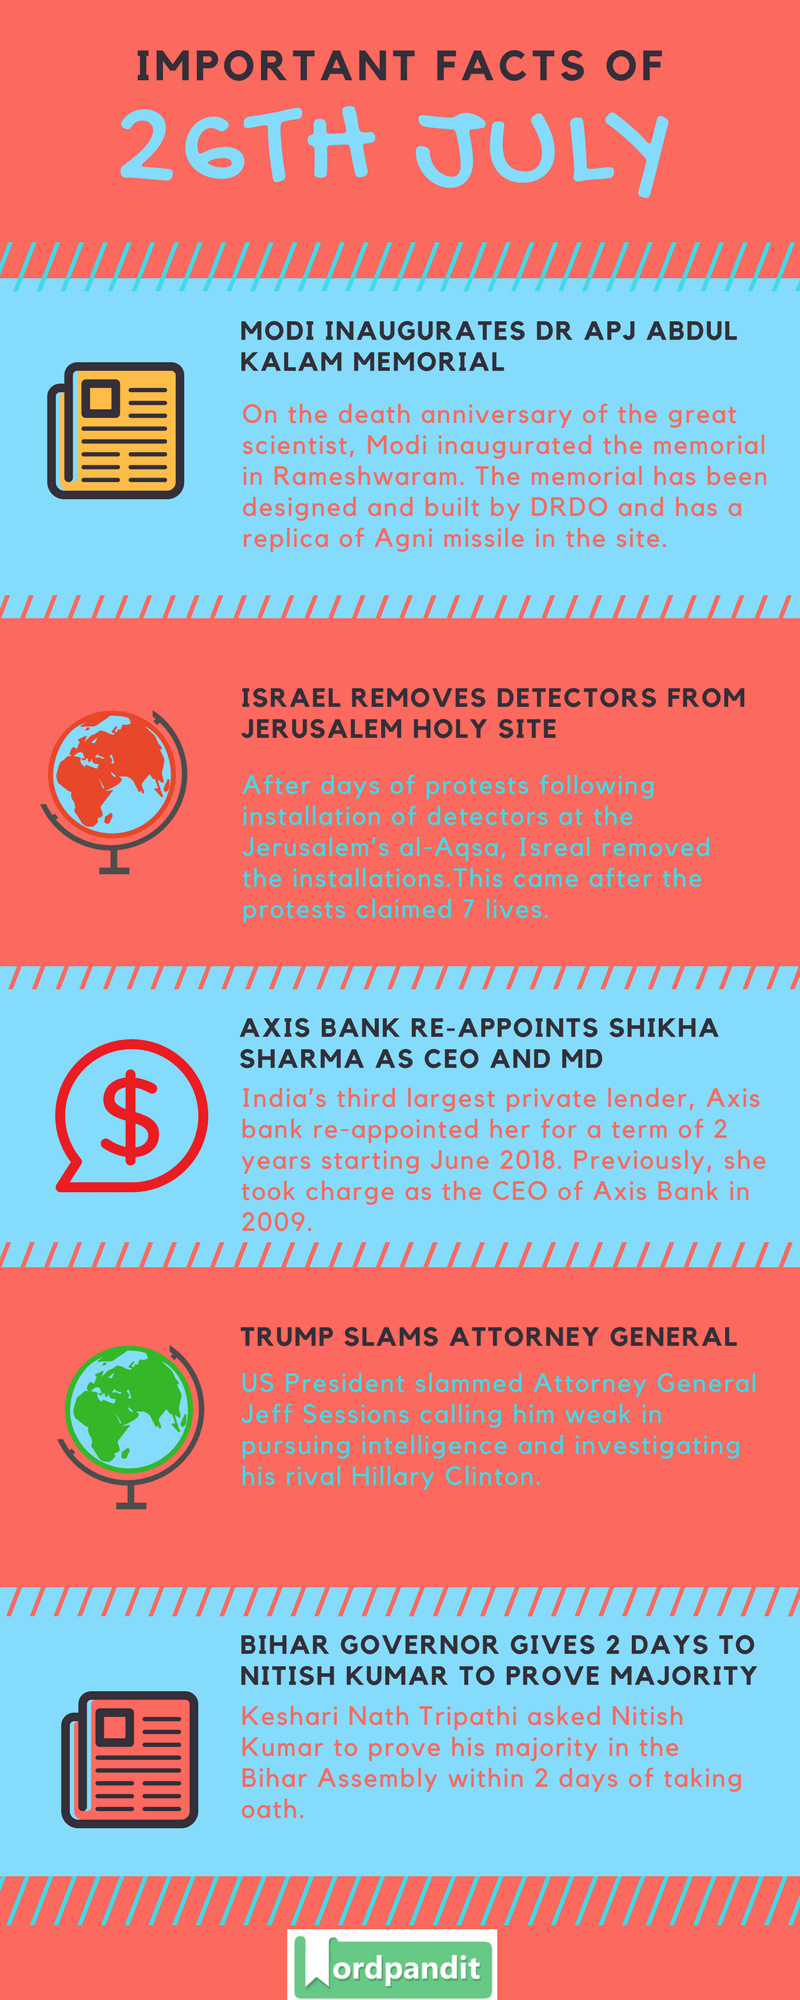 Daily-Current-Affairs-27-july-2017-Current-Affairs-Quiz-july-27-2017-Current-Affairs-Infographic